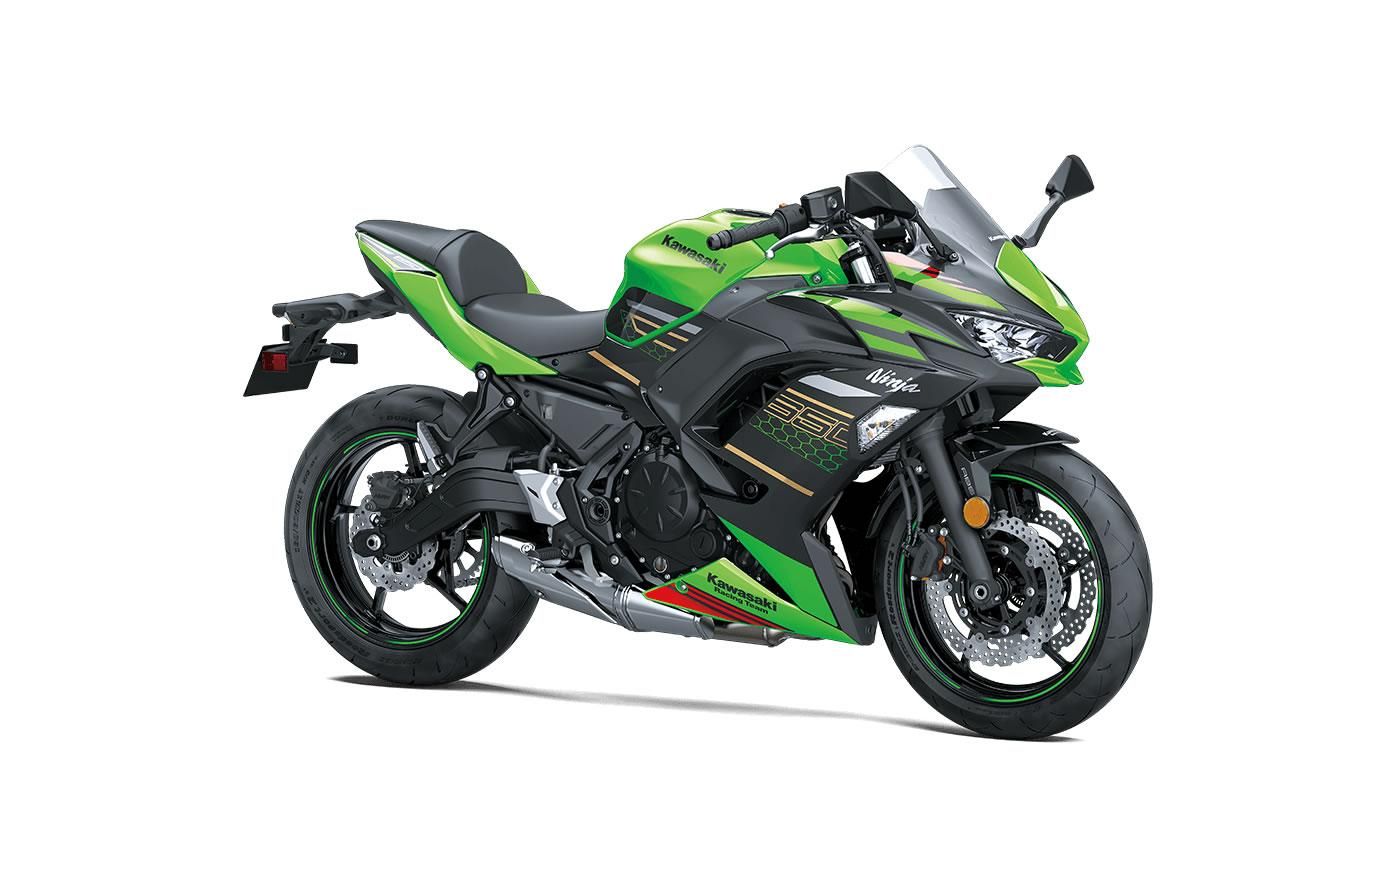 supersports-kawasaki-ninja-650-abs-krt-edition